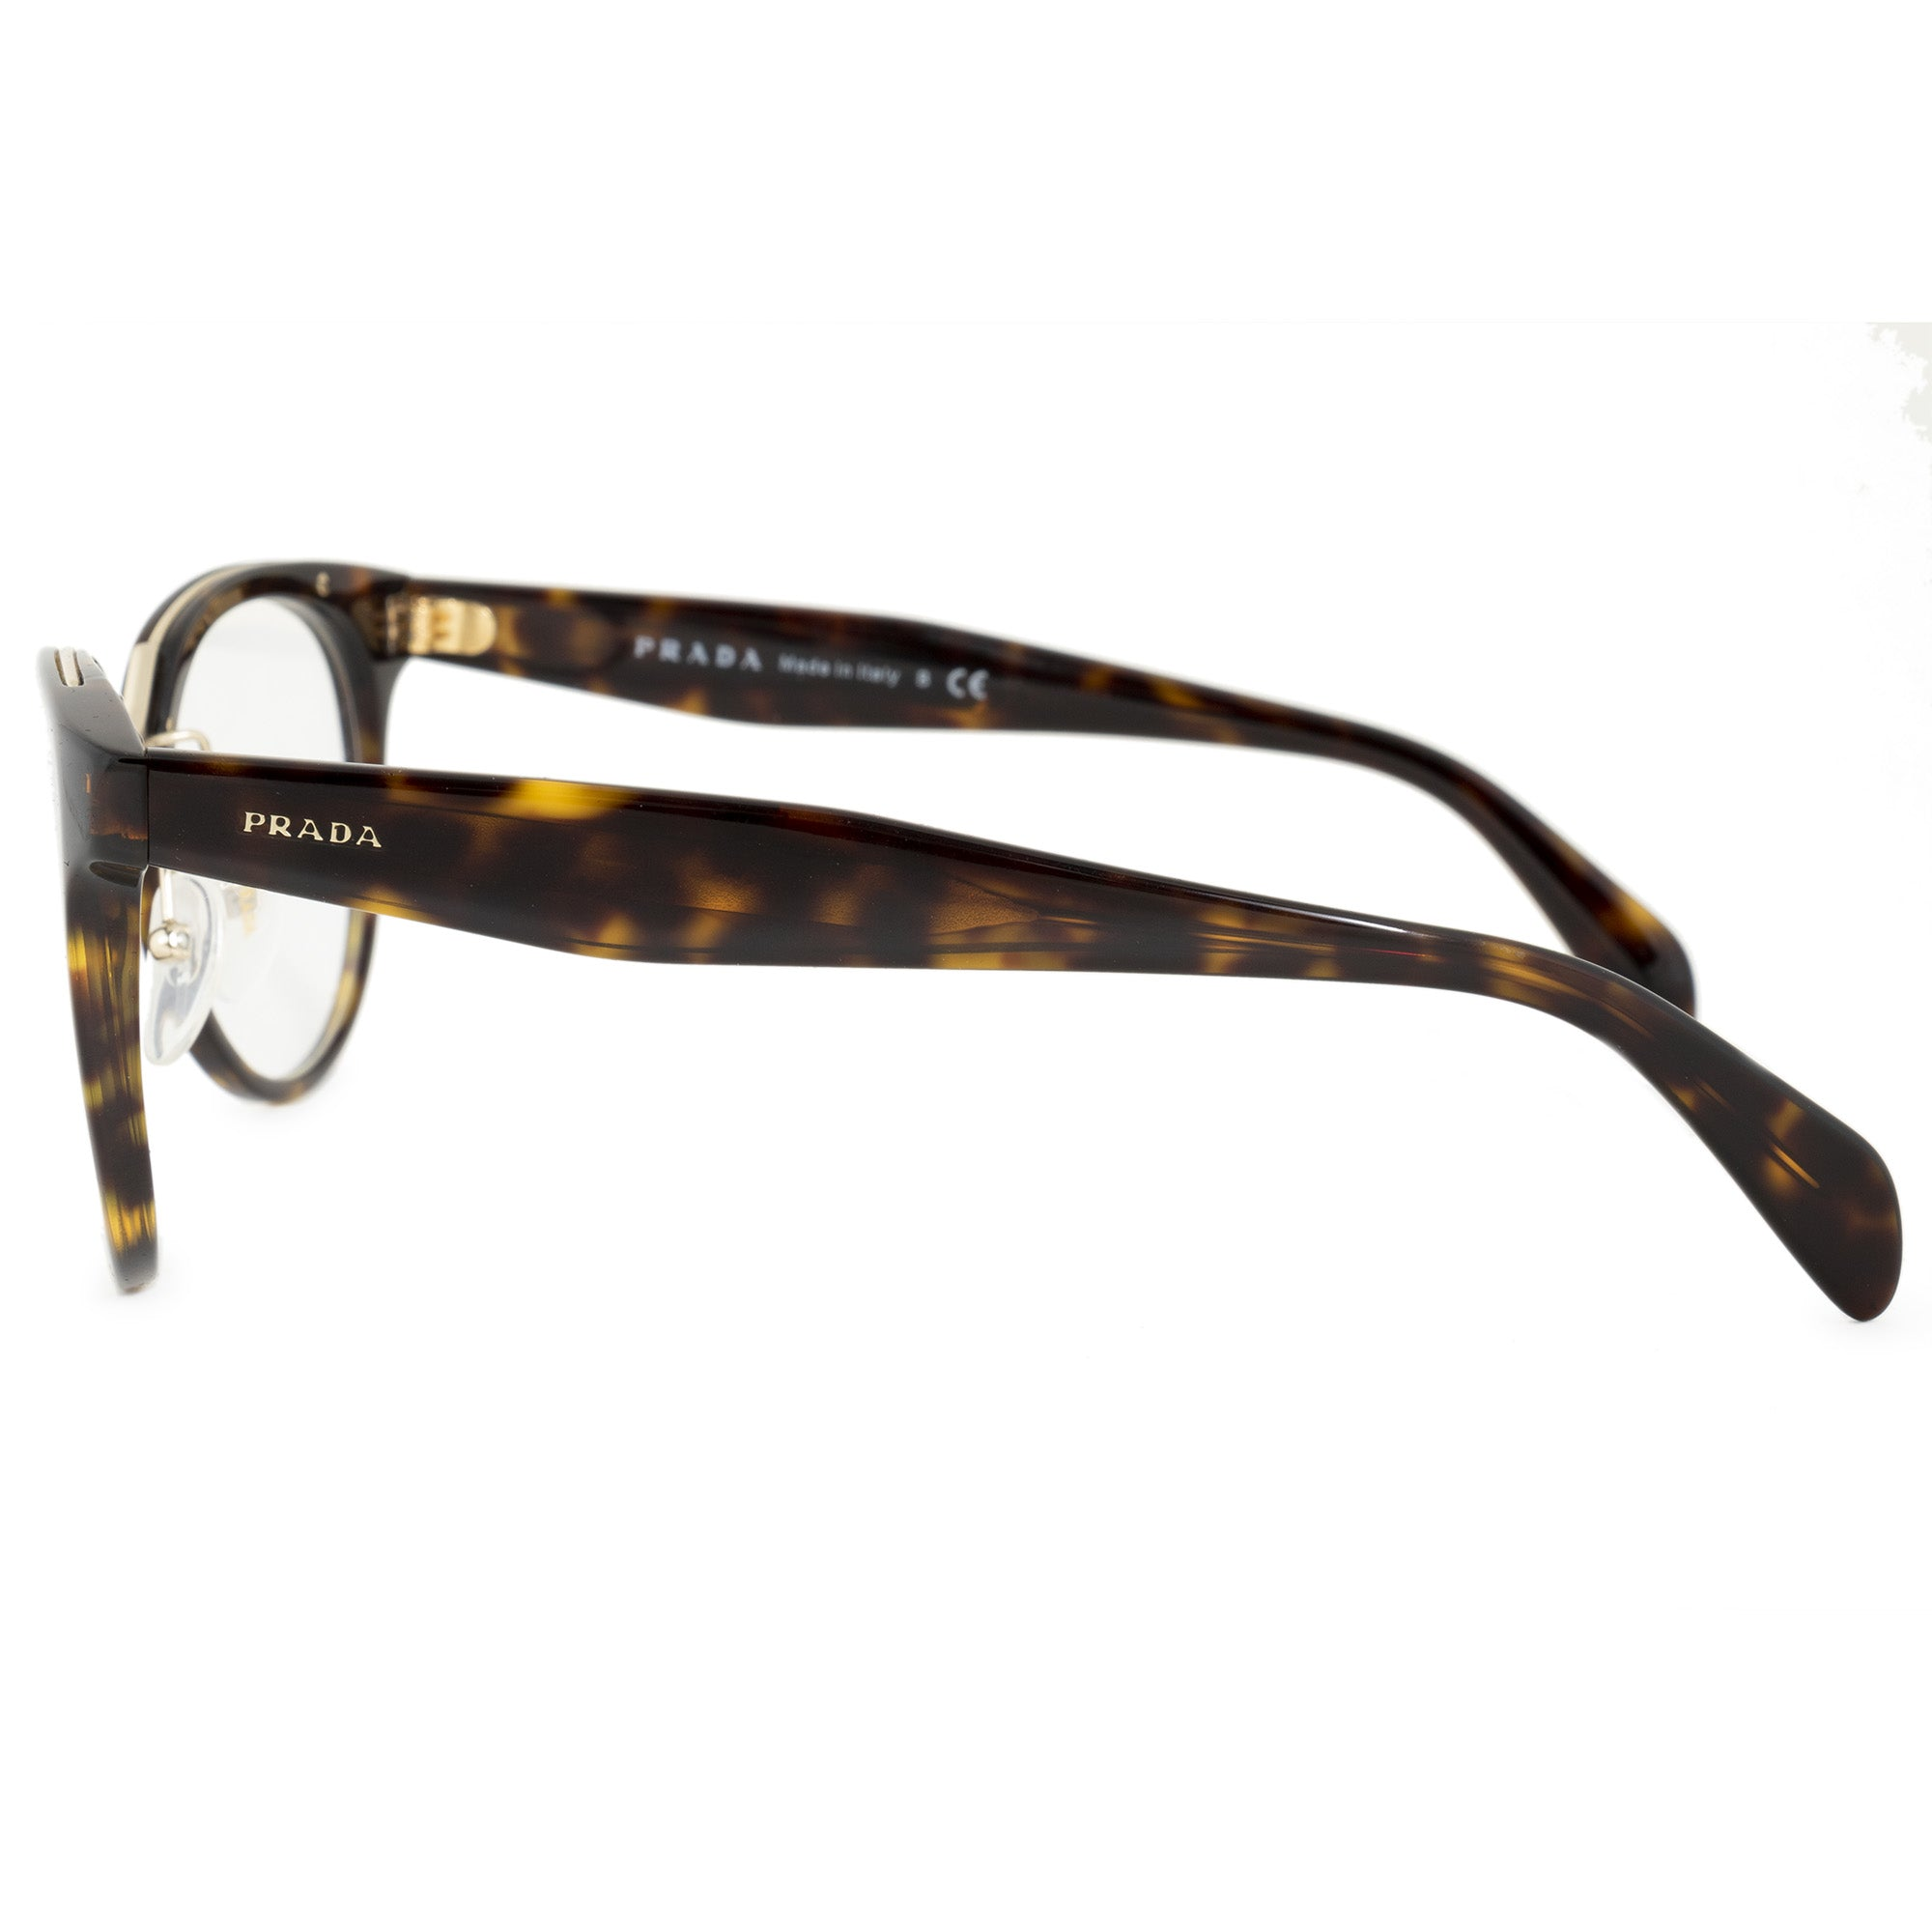 Prada Catwalk Inspiration PR 03UV 2AU1O1 51 Cat Eye Eyeglasses Frames